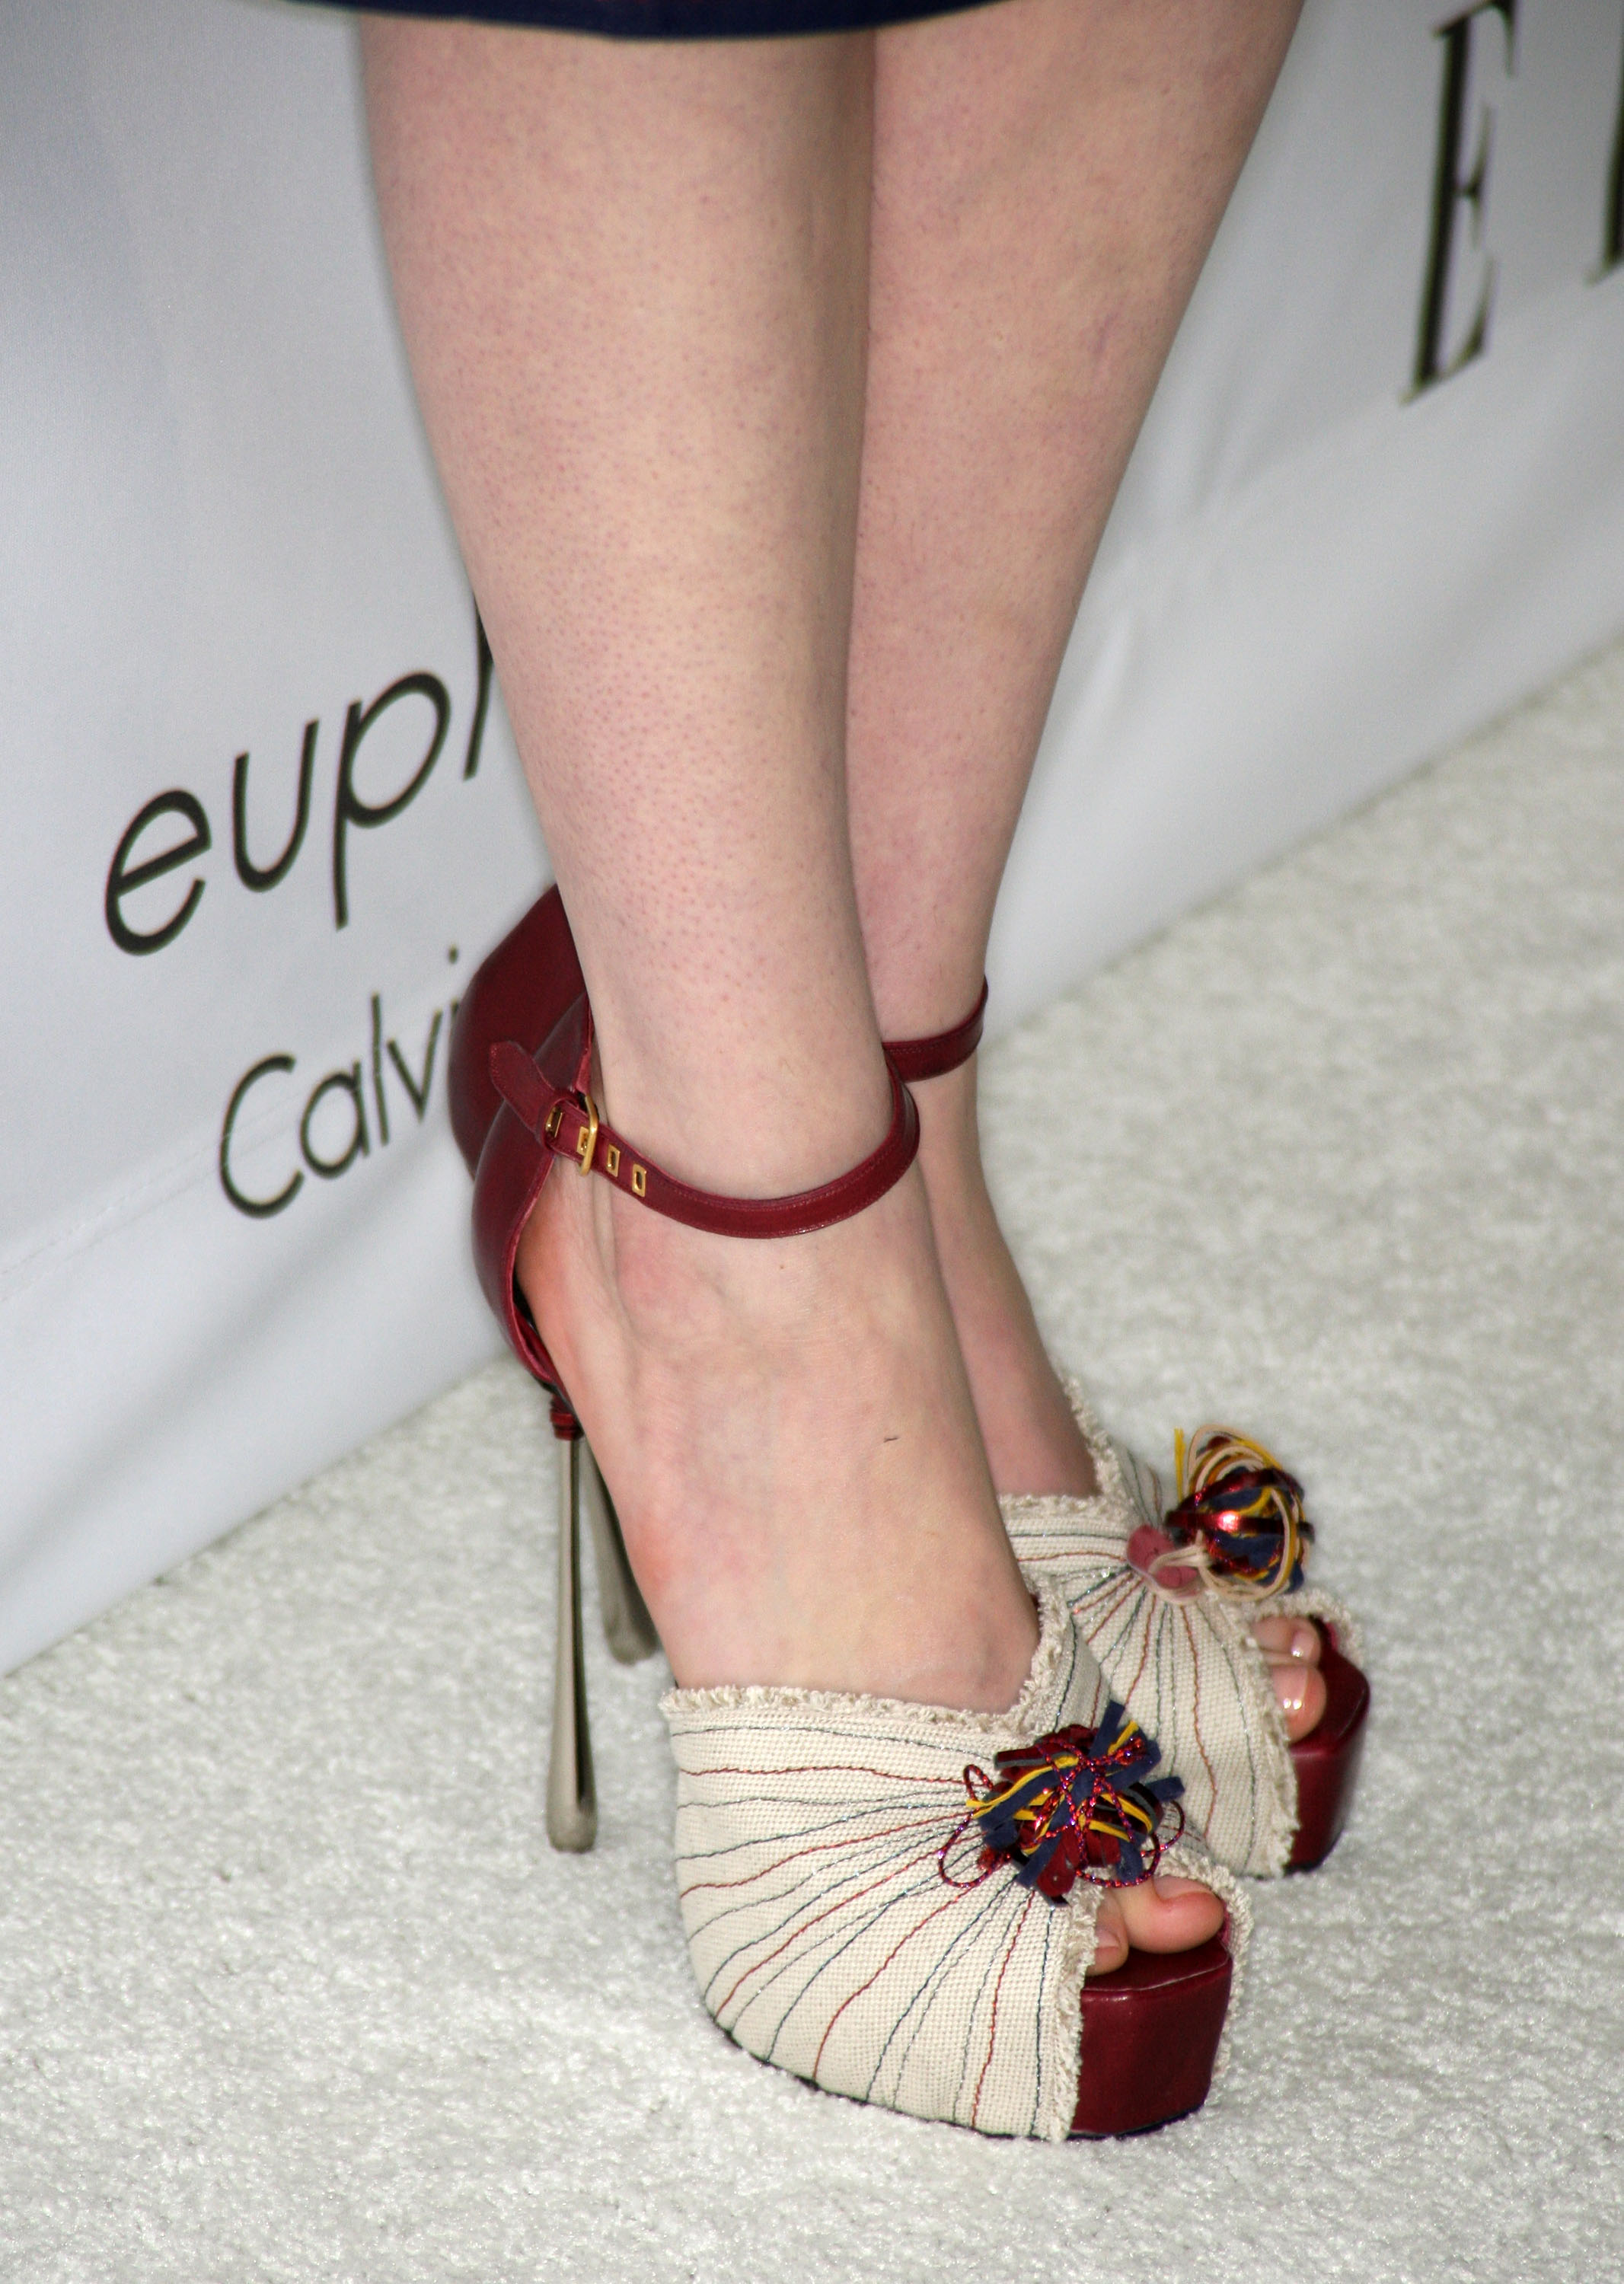 67692_Anne_Hathaway_2008-10-06_-_15th_annual_Women_In_Hollywood_Tribute_058_122_1084lo.jpg